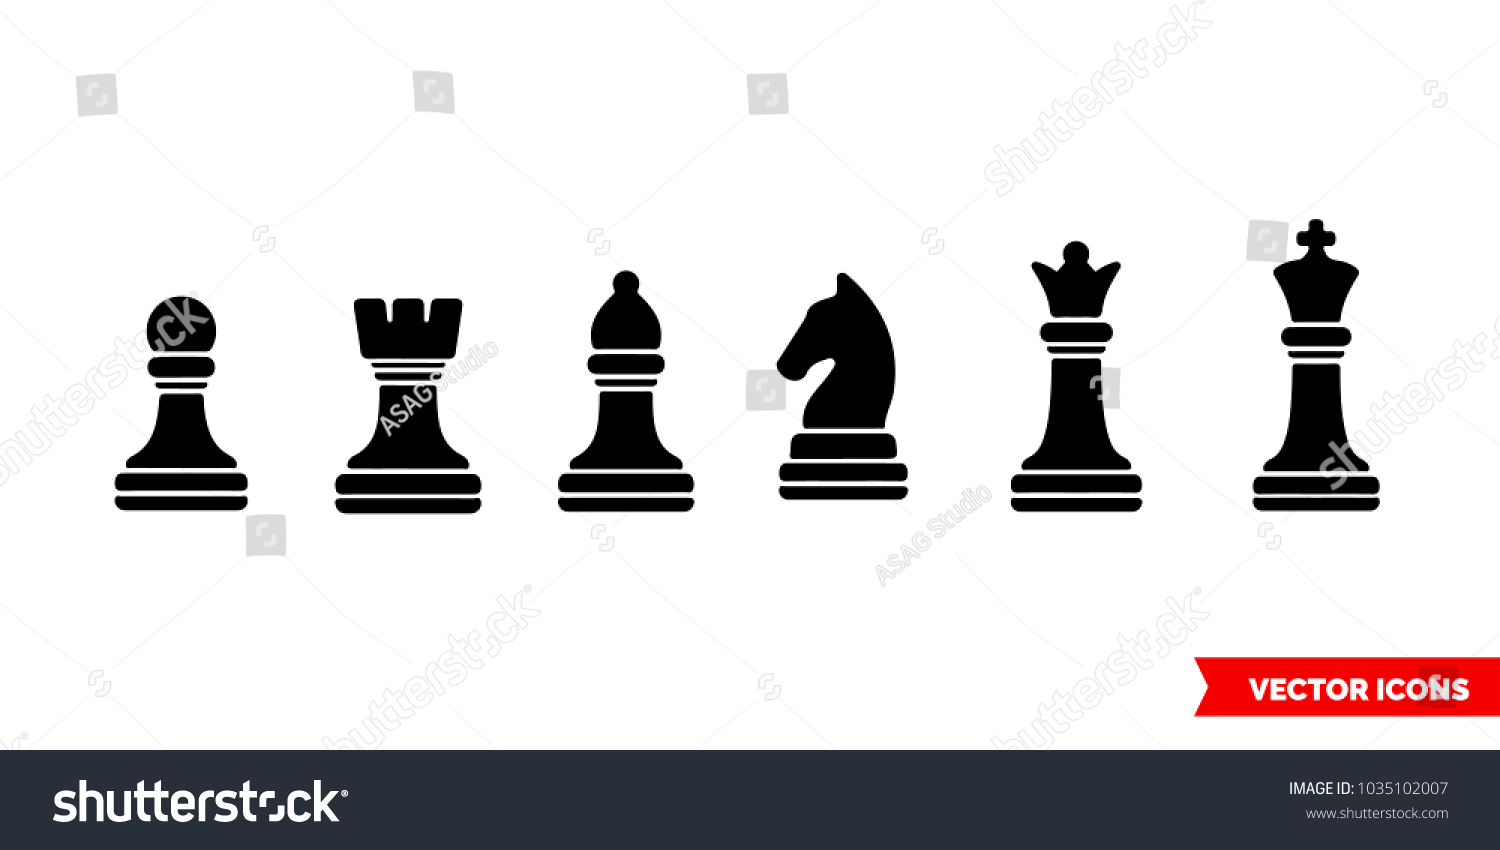 Set chess symbols black icon 3 stock vector 1035102007 shutterstock set of a chess symbols black icon of 3 types color black and white biocorpaavc Gallery